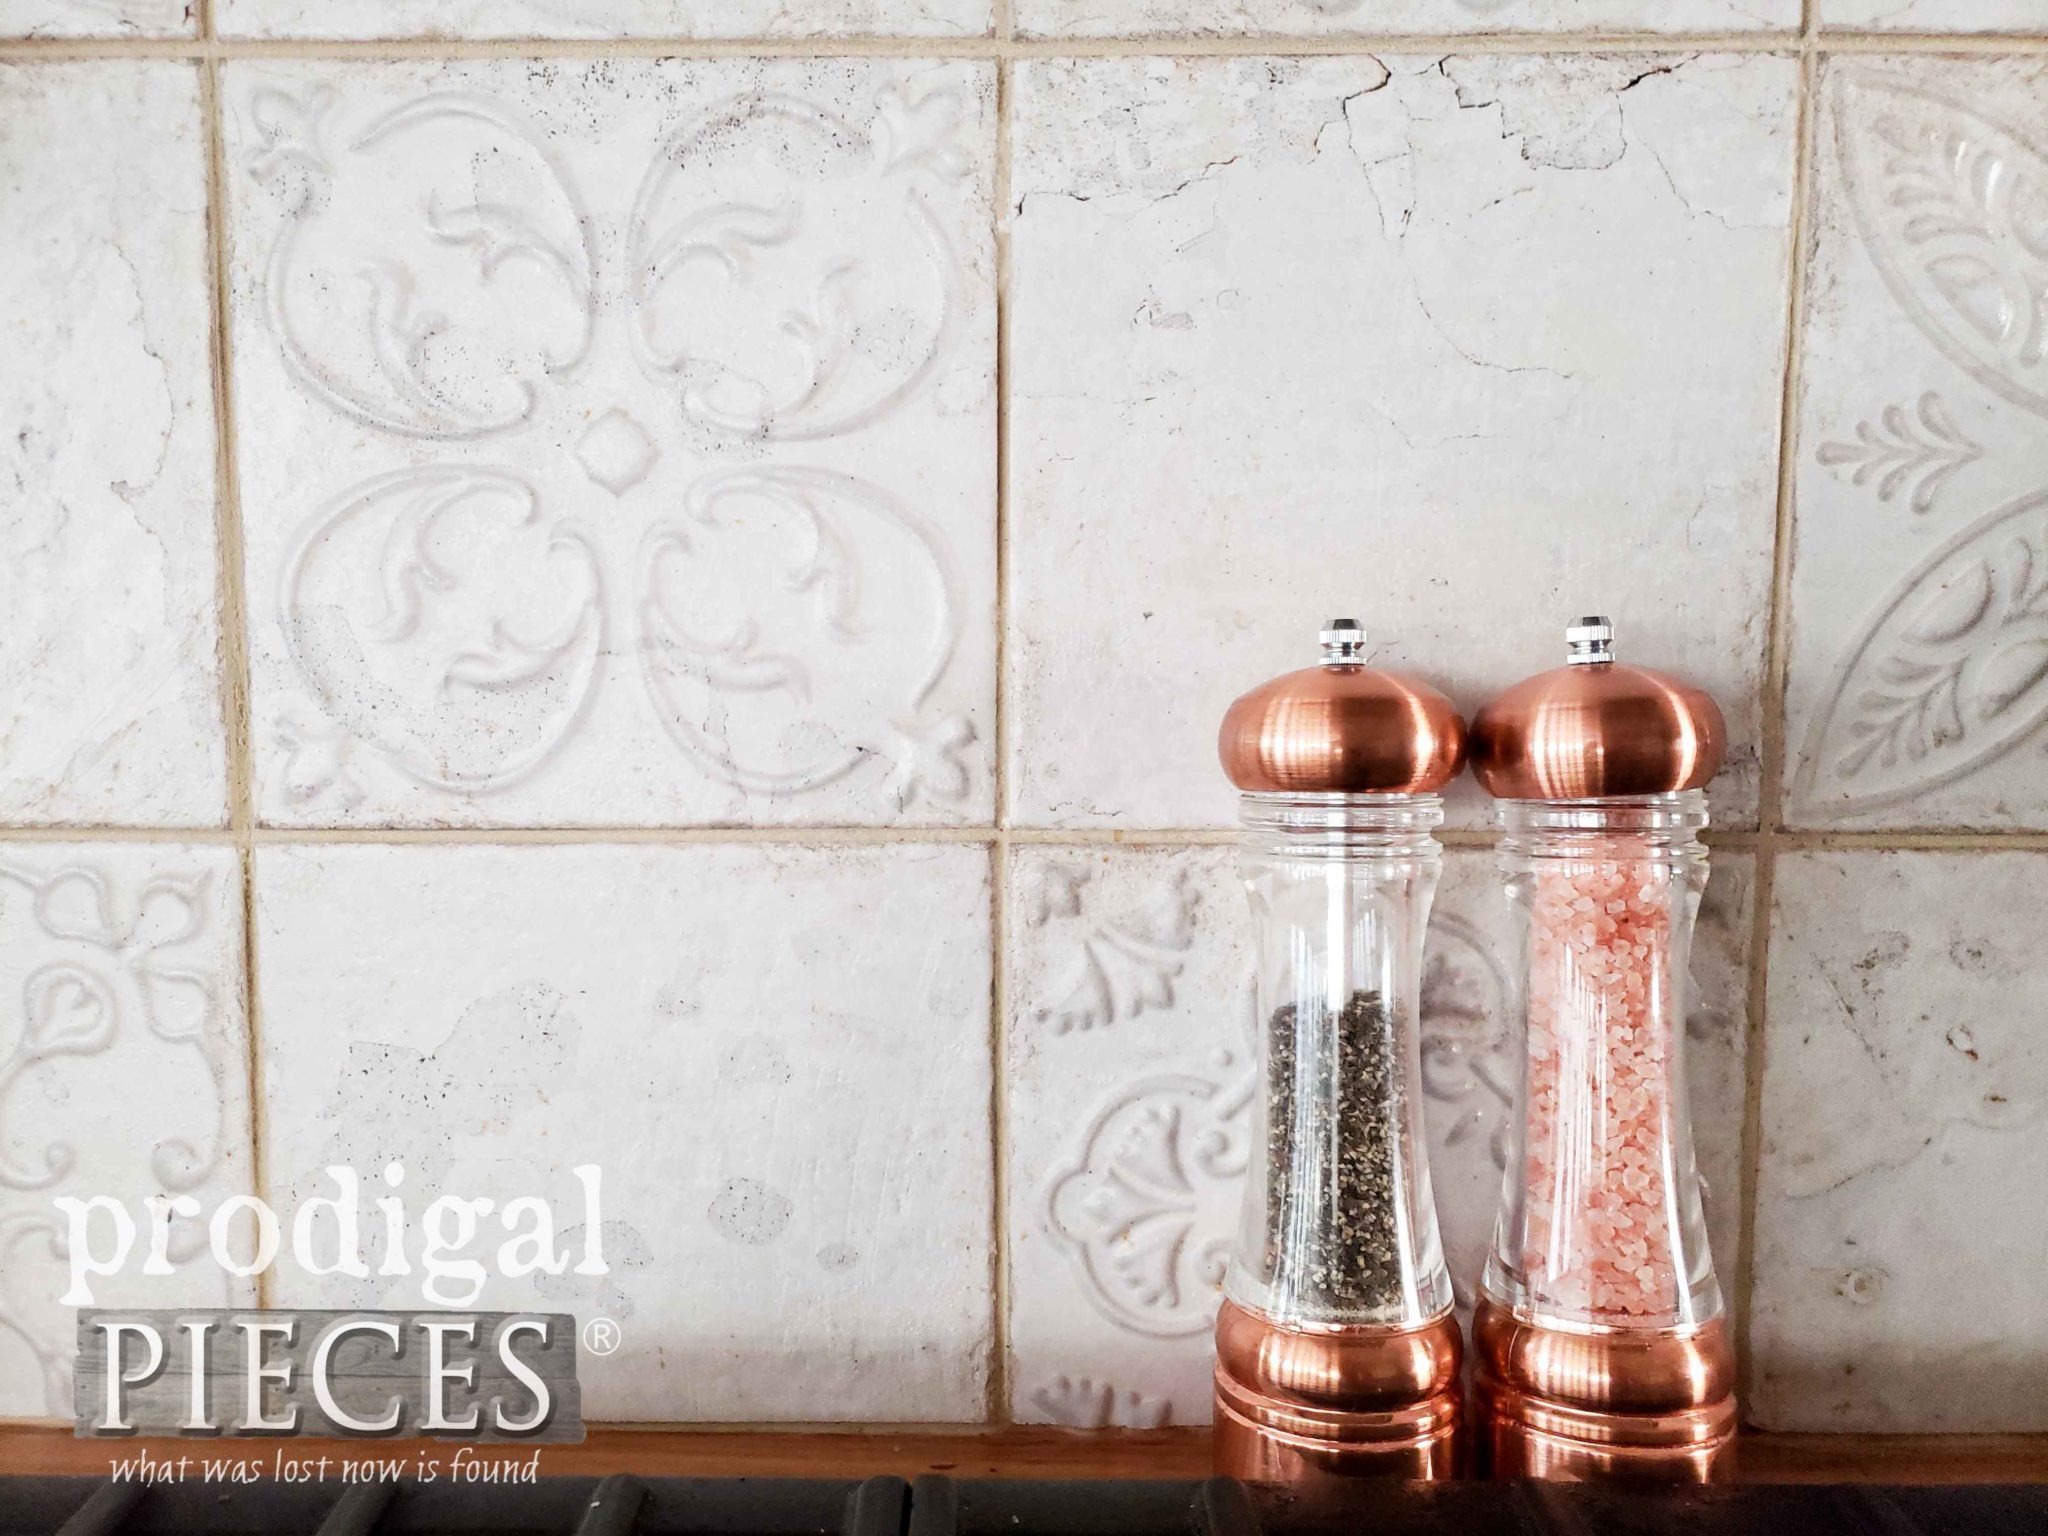 Old World Style Embossed Tile for Farmhouse Kitchen and Bath by Prodigal Pieces | prodigalpieces.com